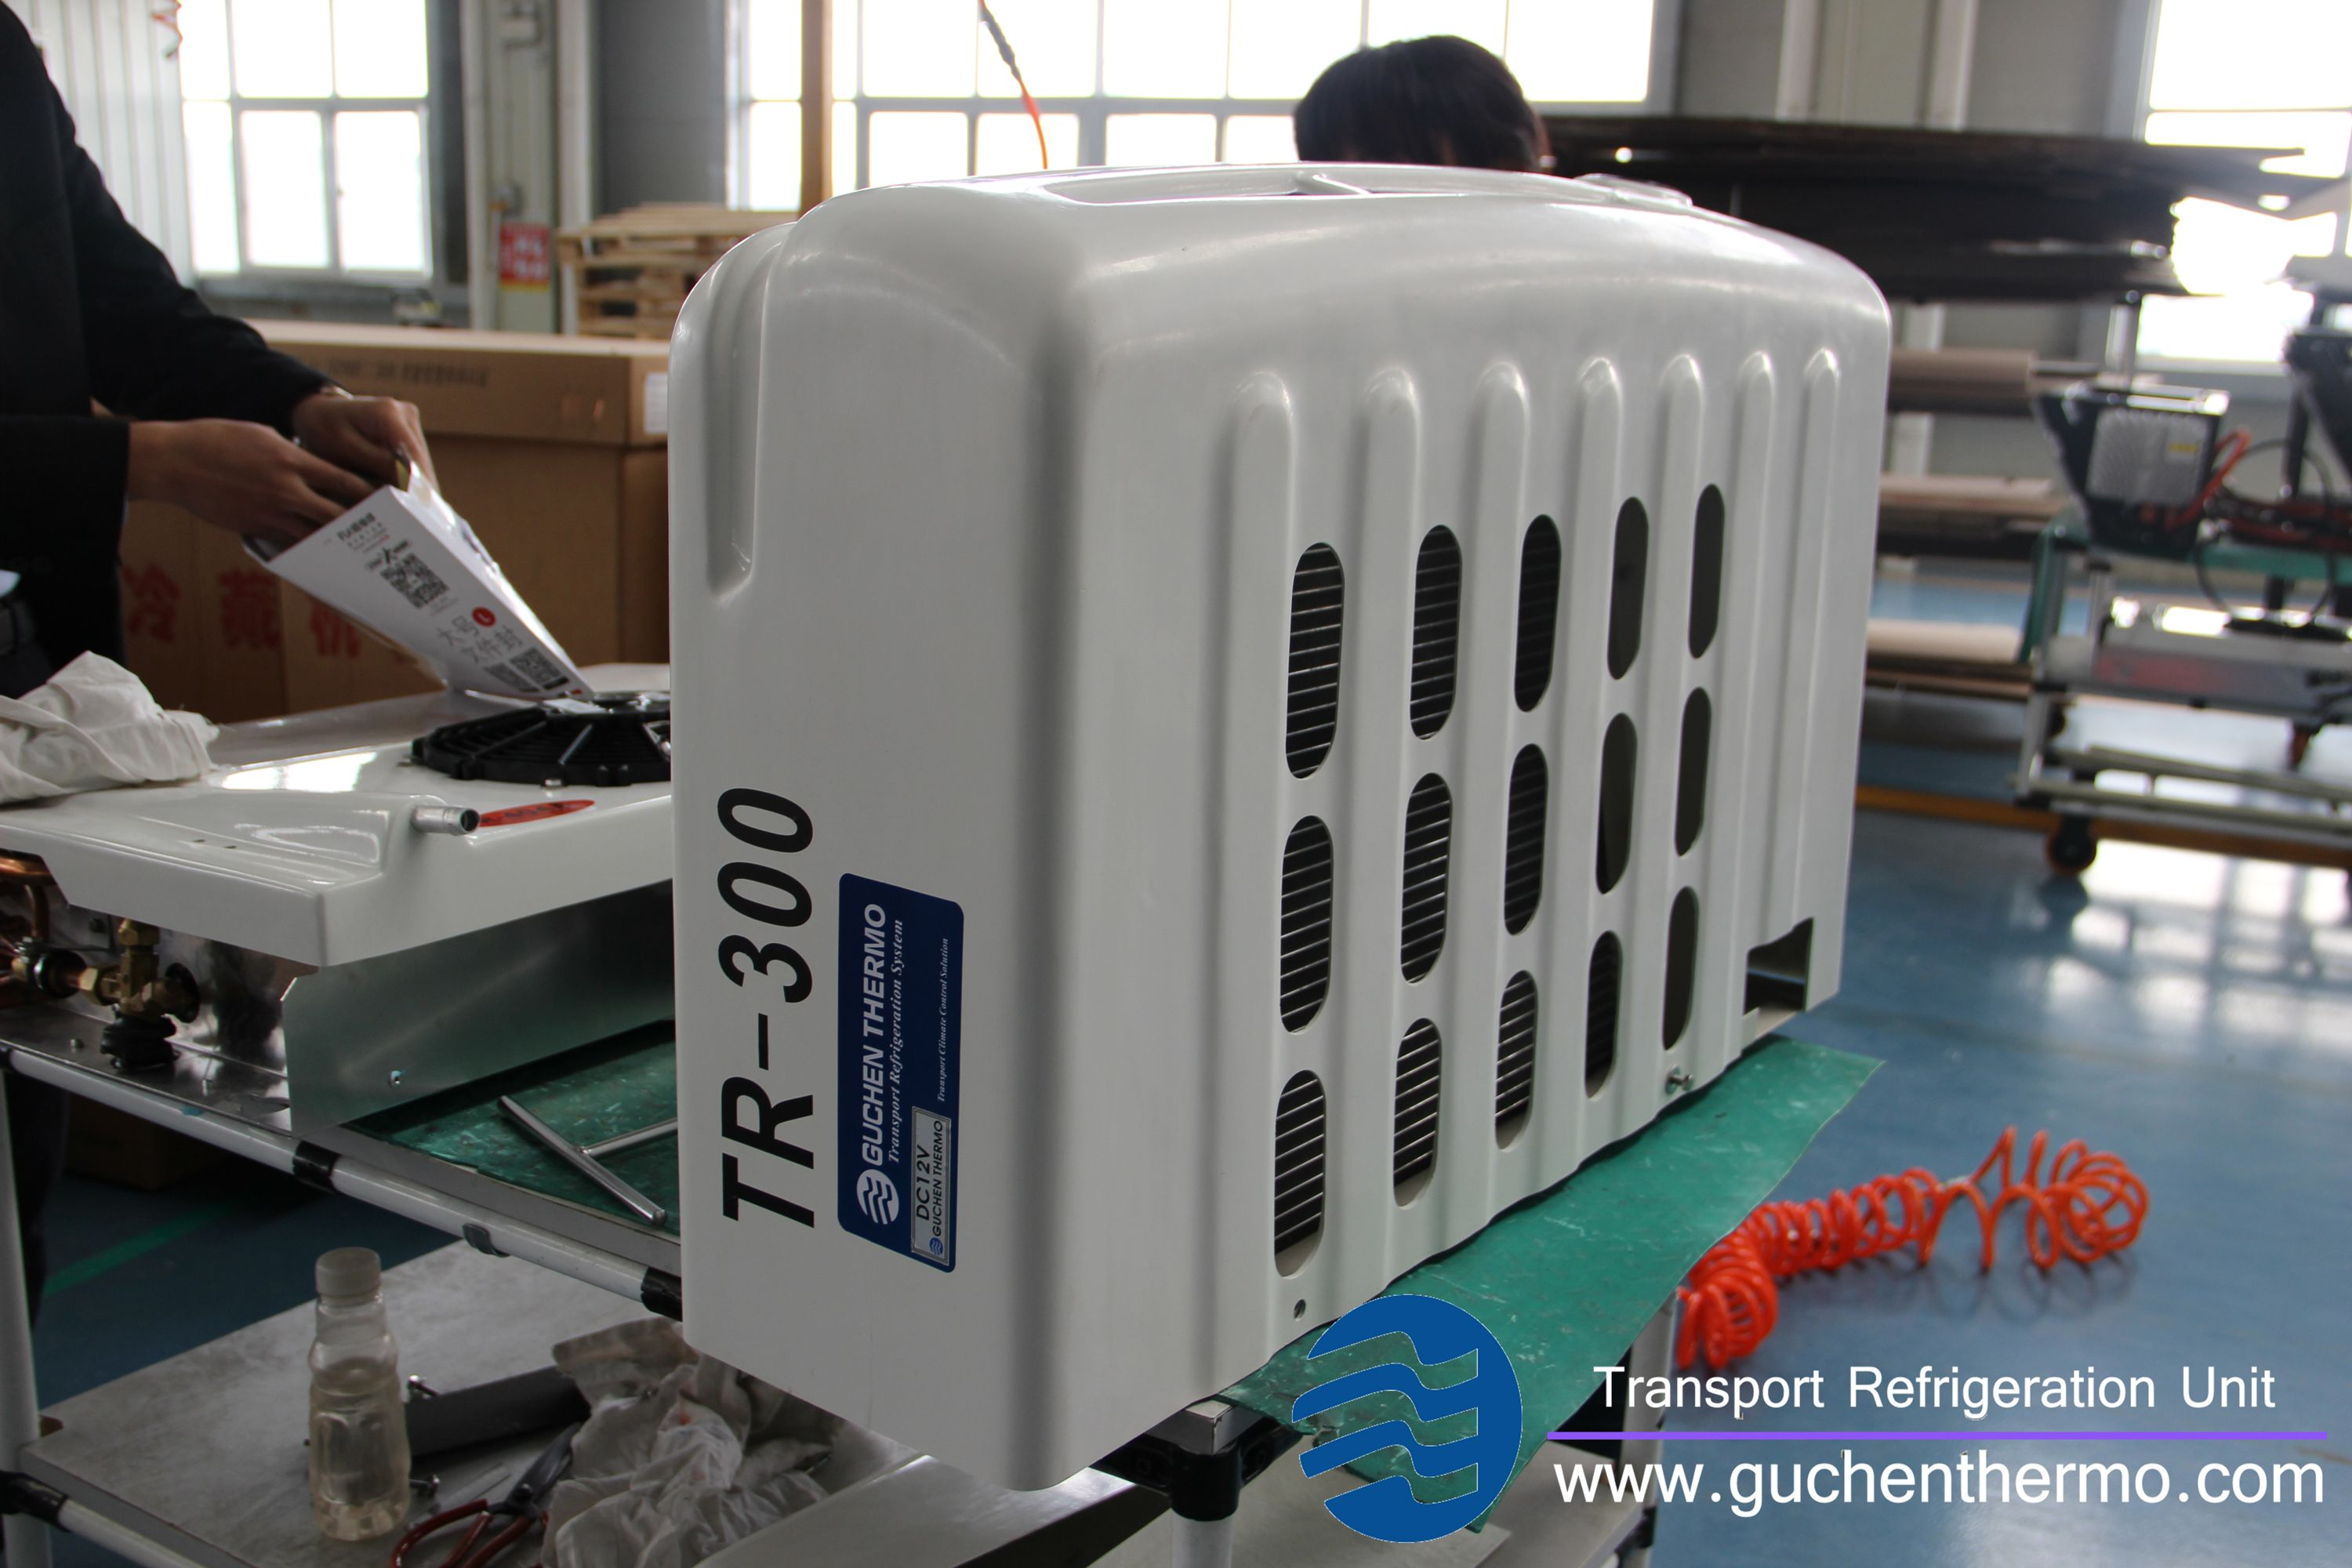 Guchen Thermo TR-300 transport refrigeration system is front